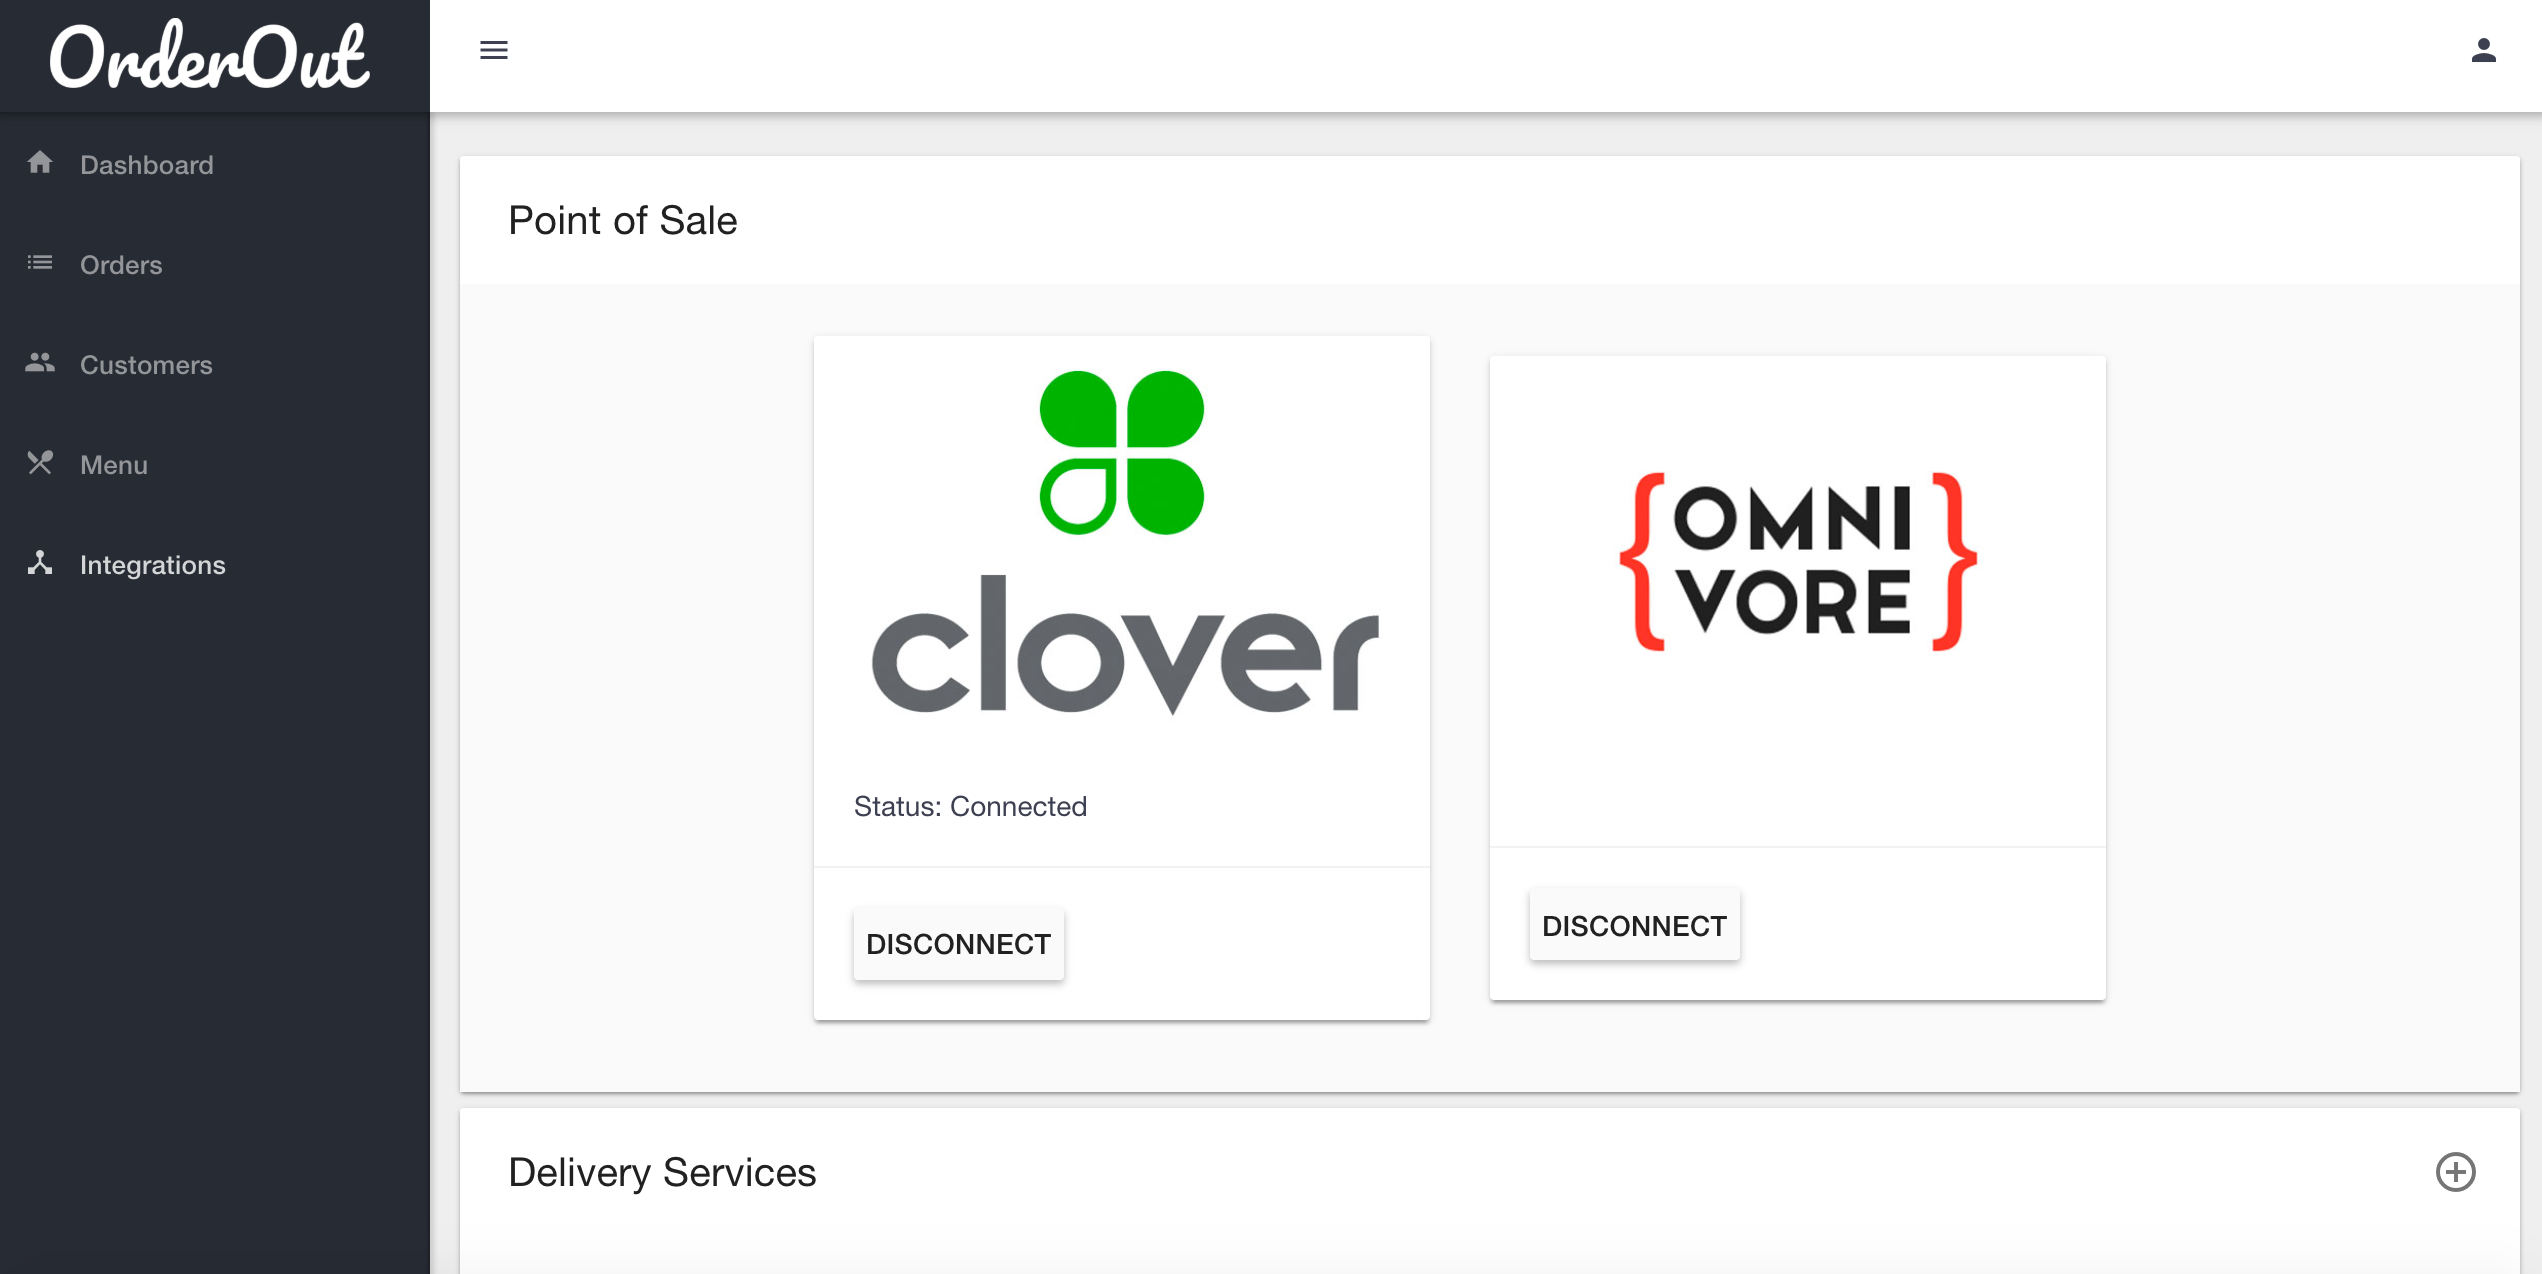 OrderOut - Point of sale integrations